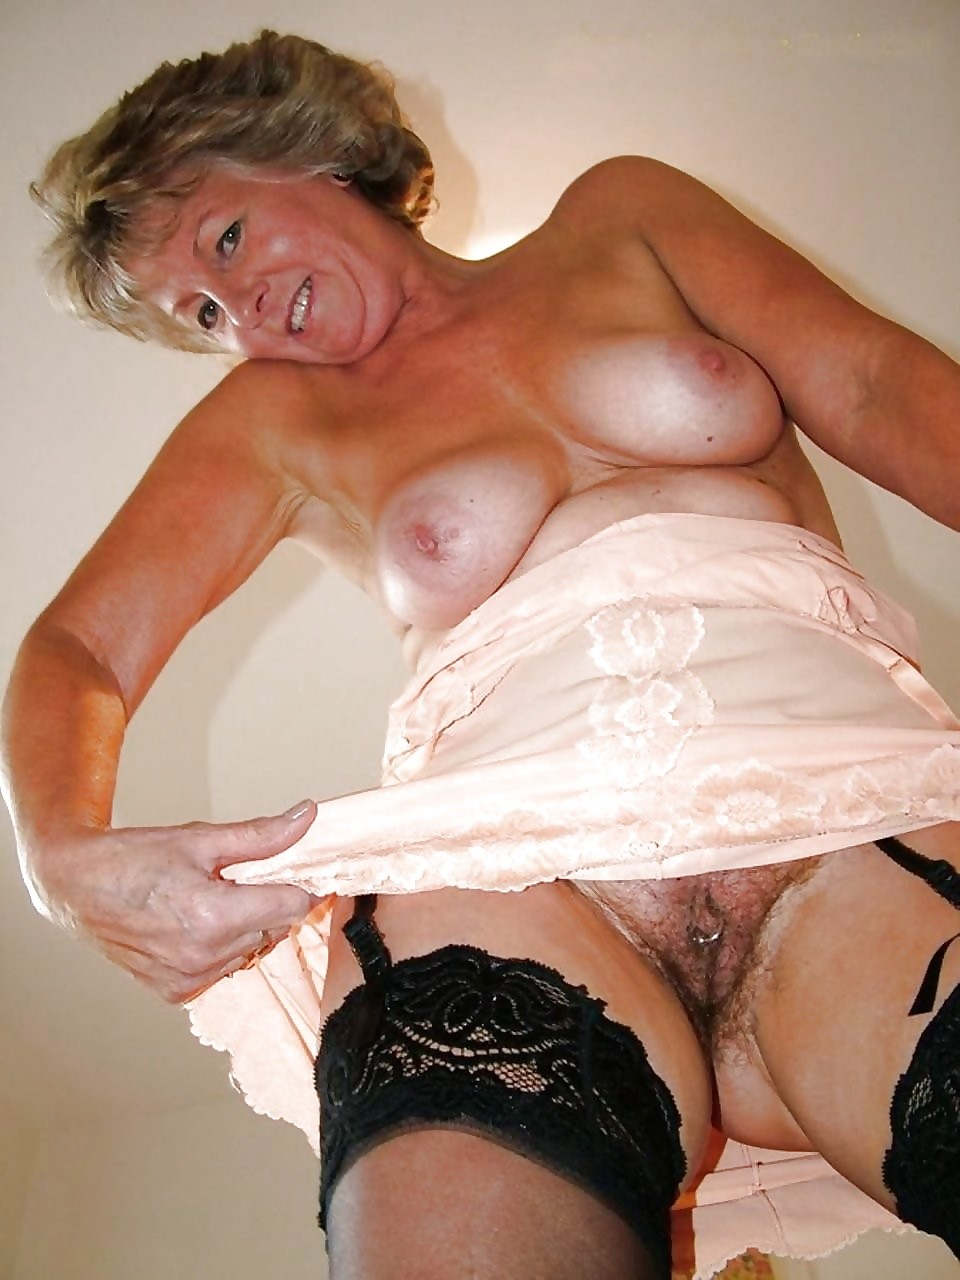 Milf hustler free video